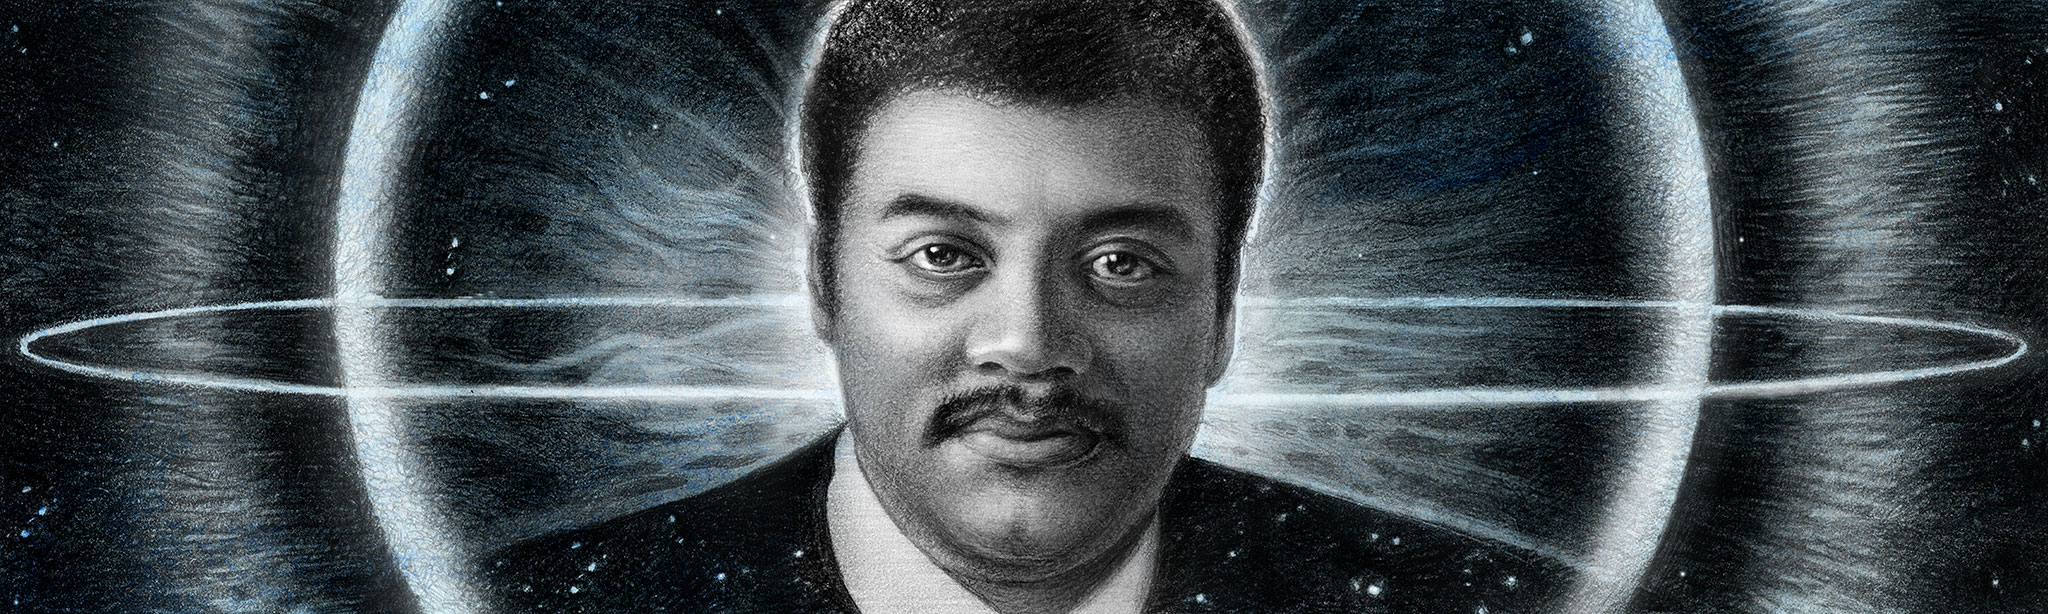 Neil deGrasse Tyson by Armando Veve